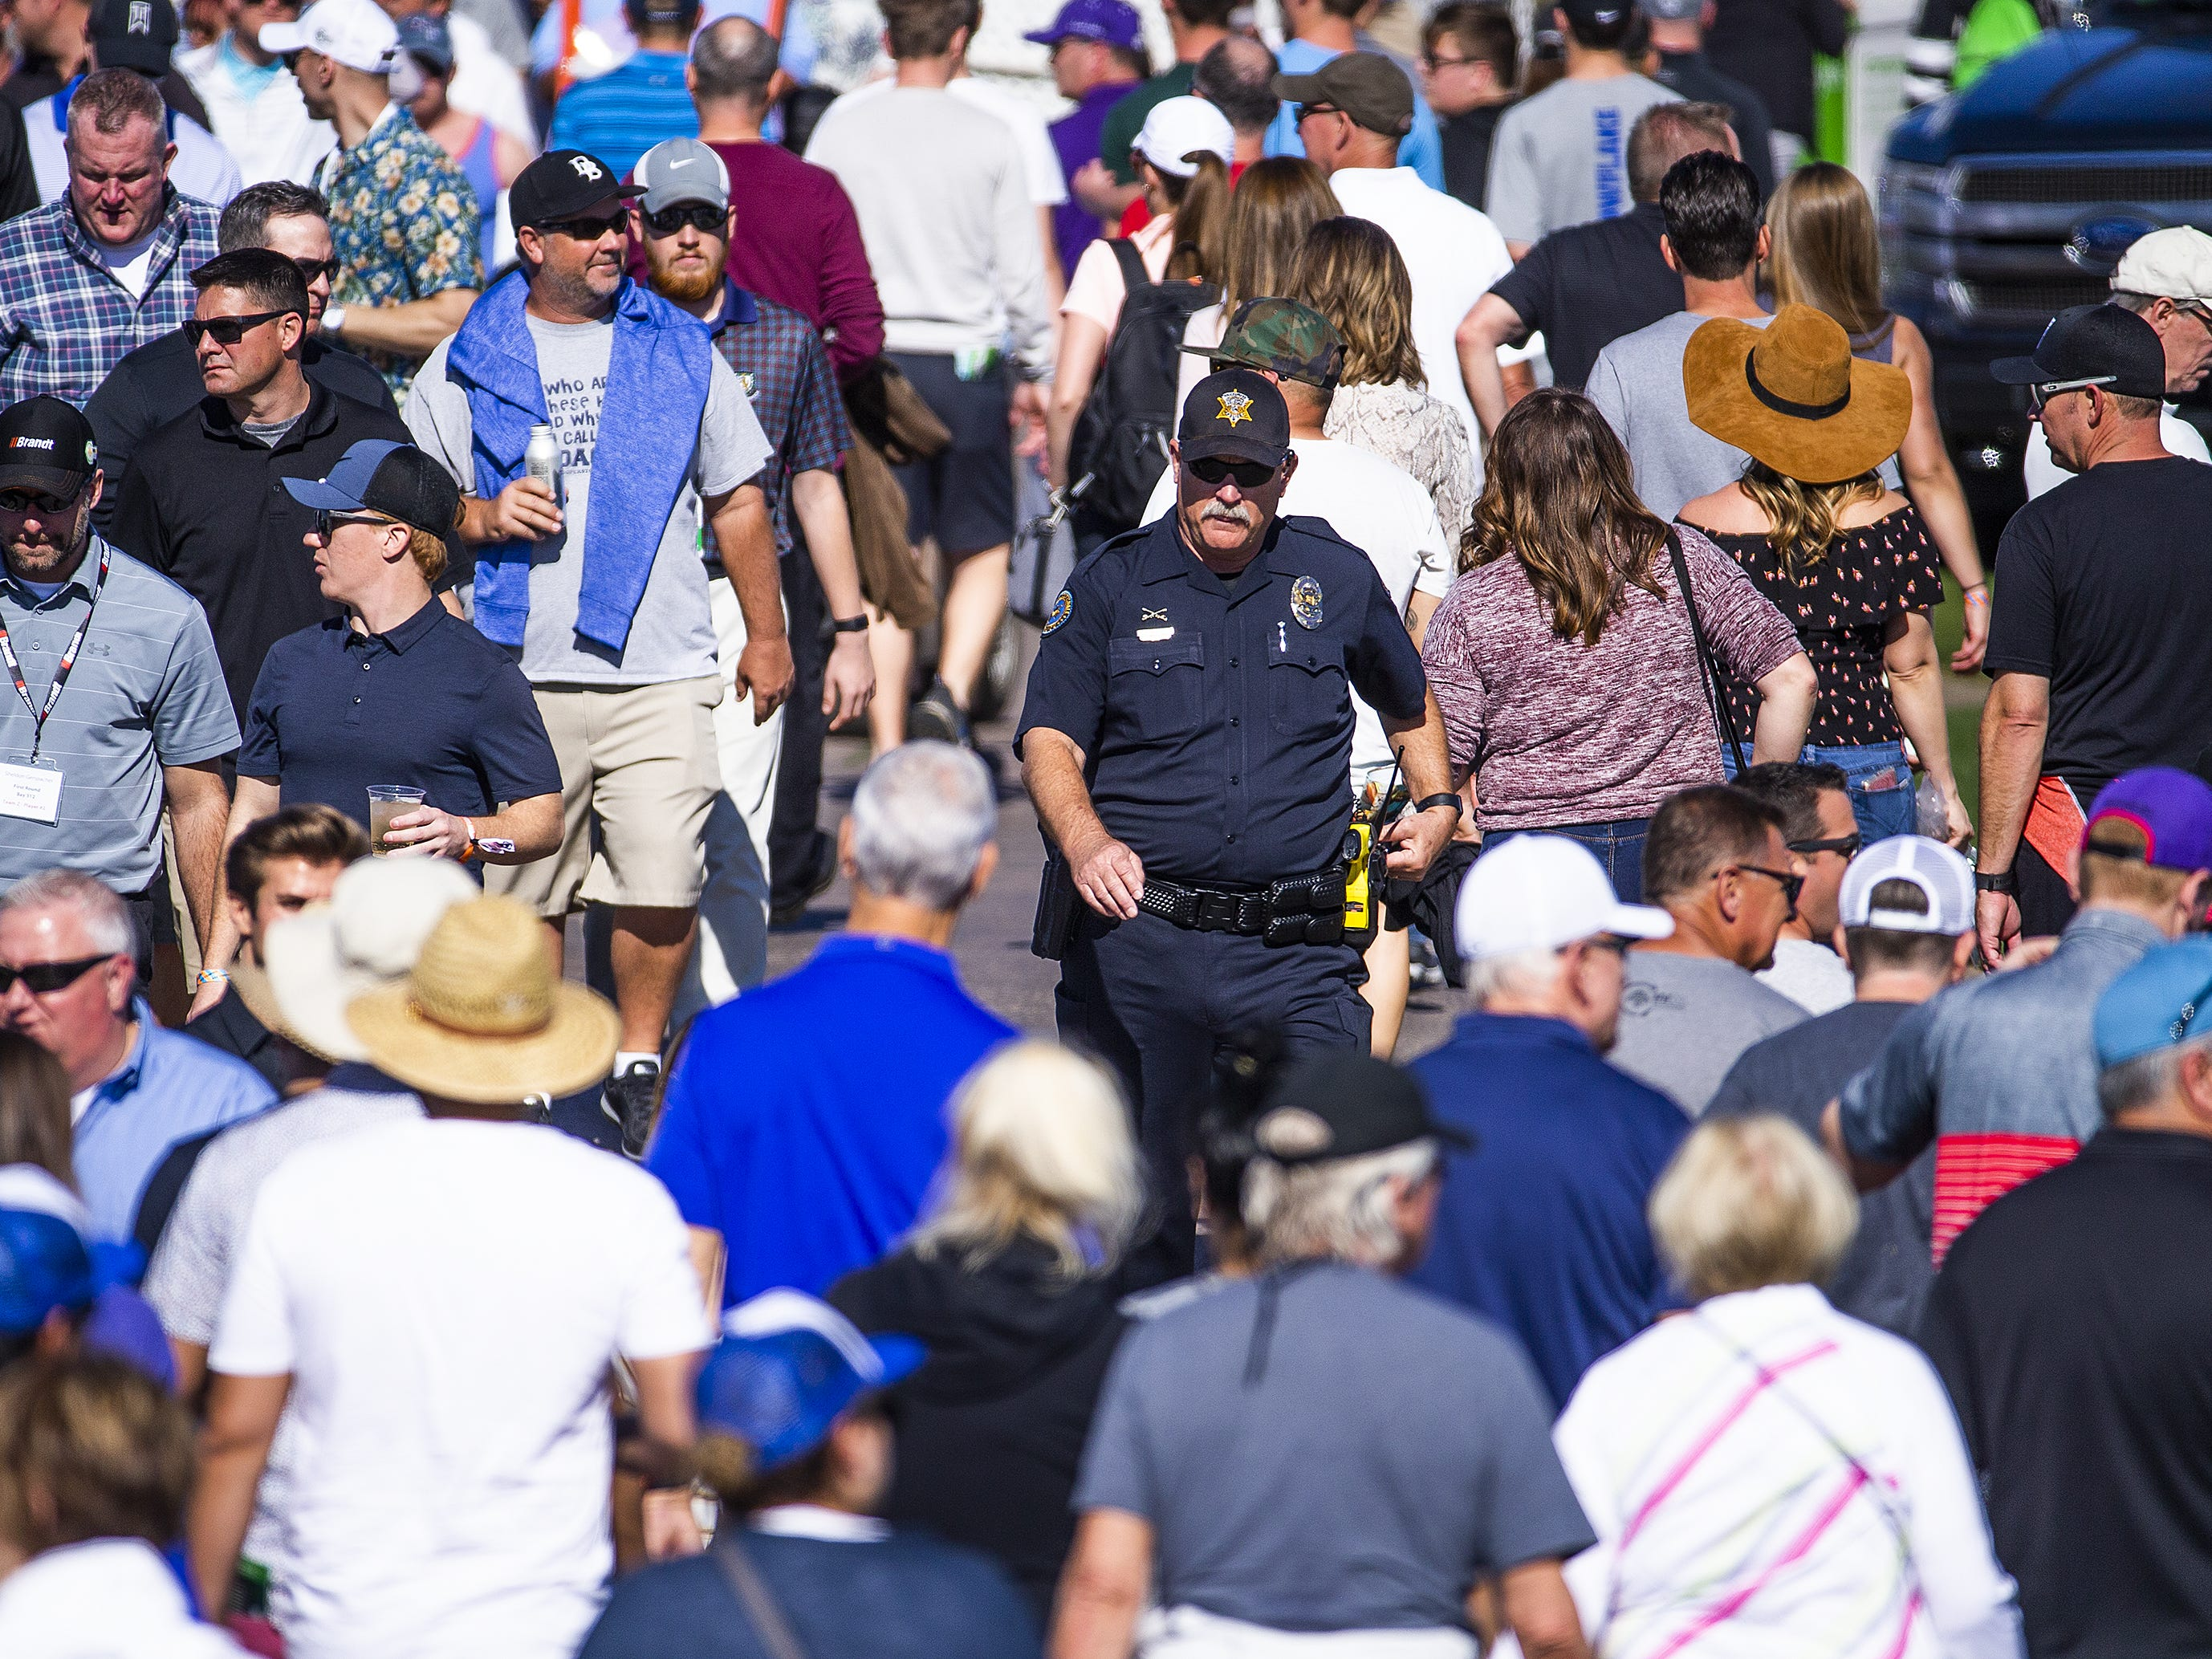 A police officer makes his way through the crowd during the second round of the Waste Management Phoenix Open at the TPC Scottsdale, Friday, February 1, 2019.